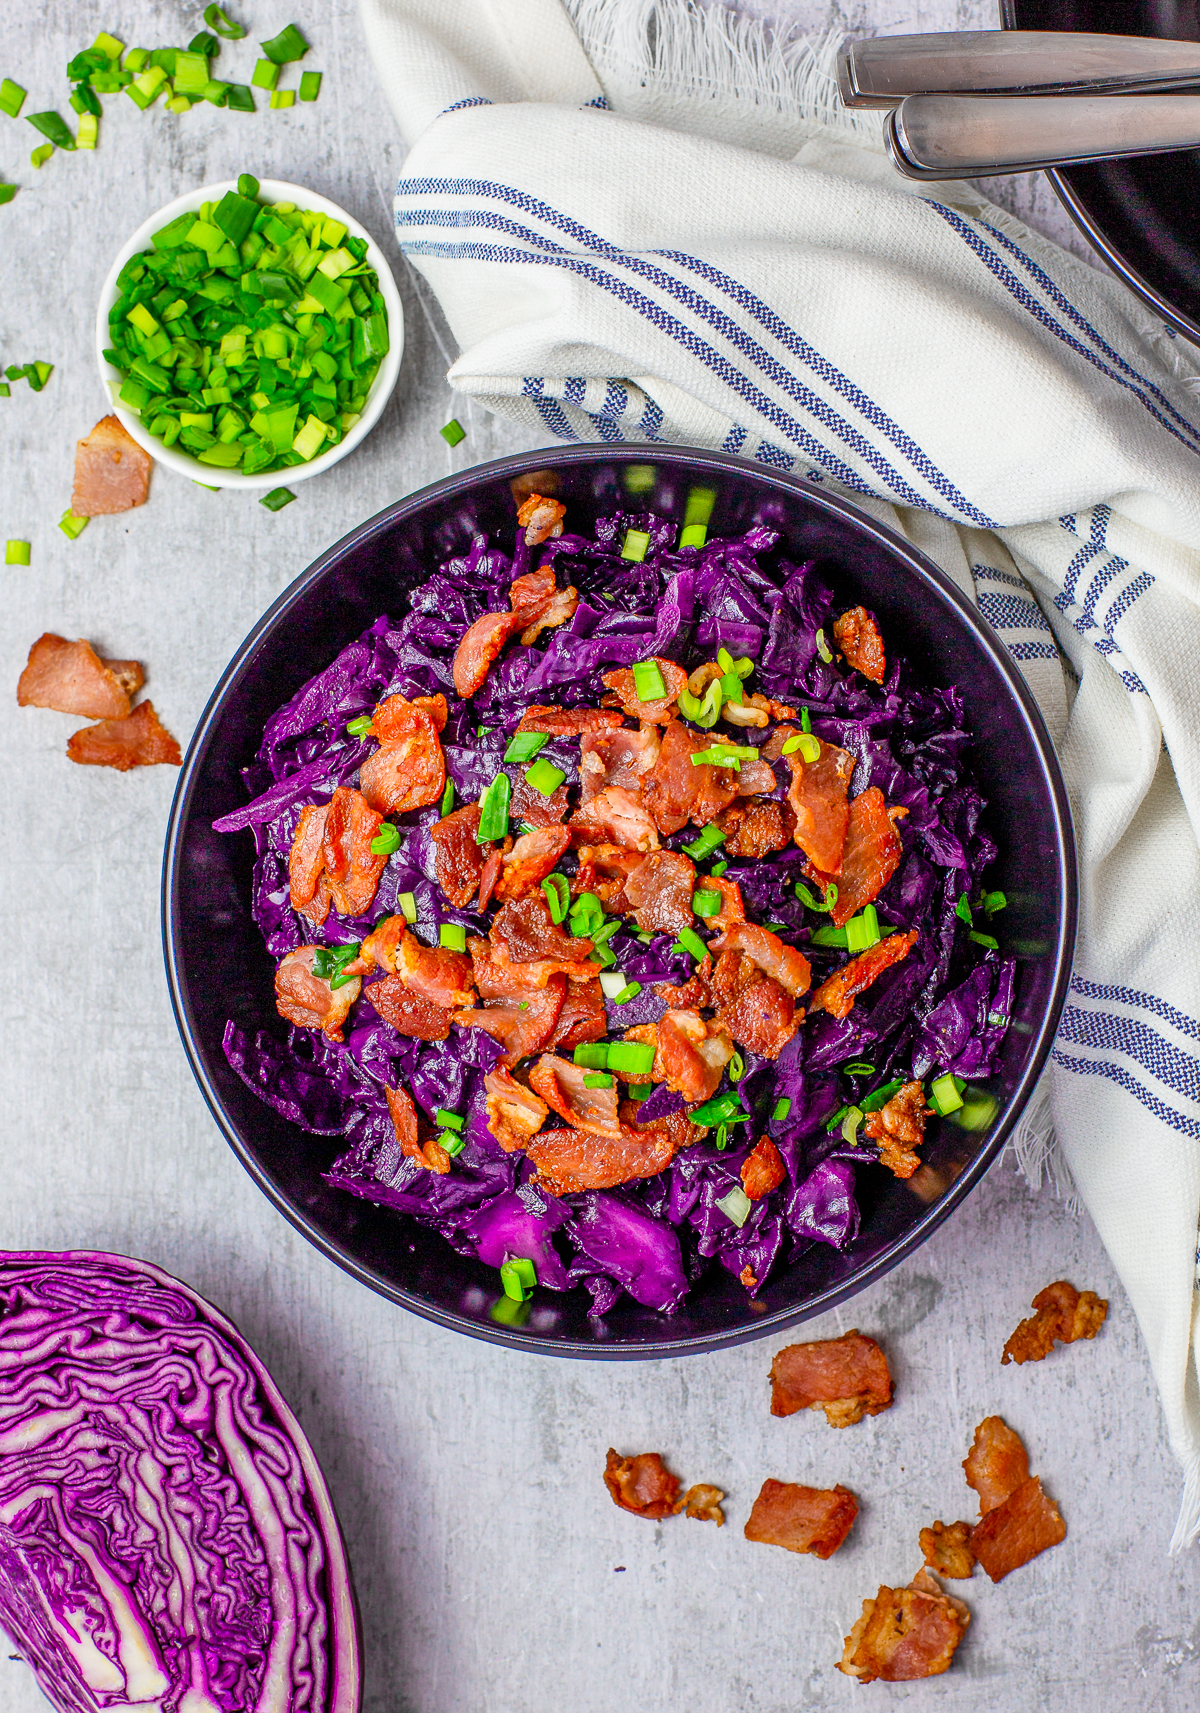 Overhead photo of Sweet and Sour Cabbage in bowl with bacon and scallionns.